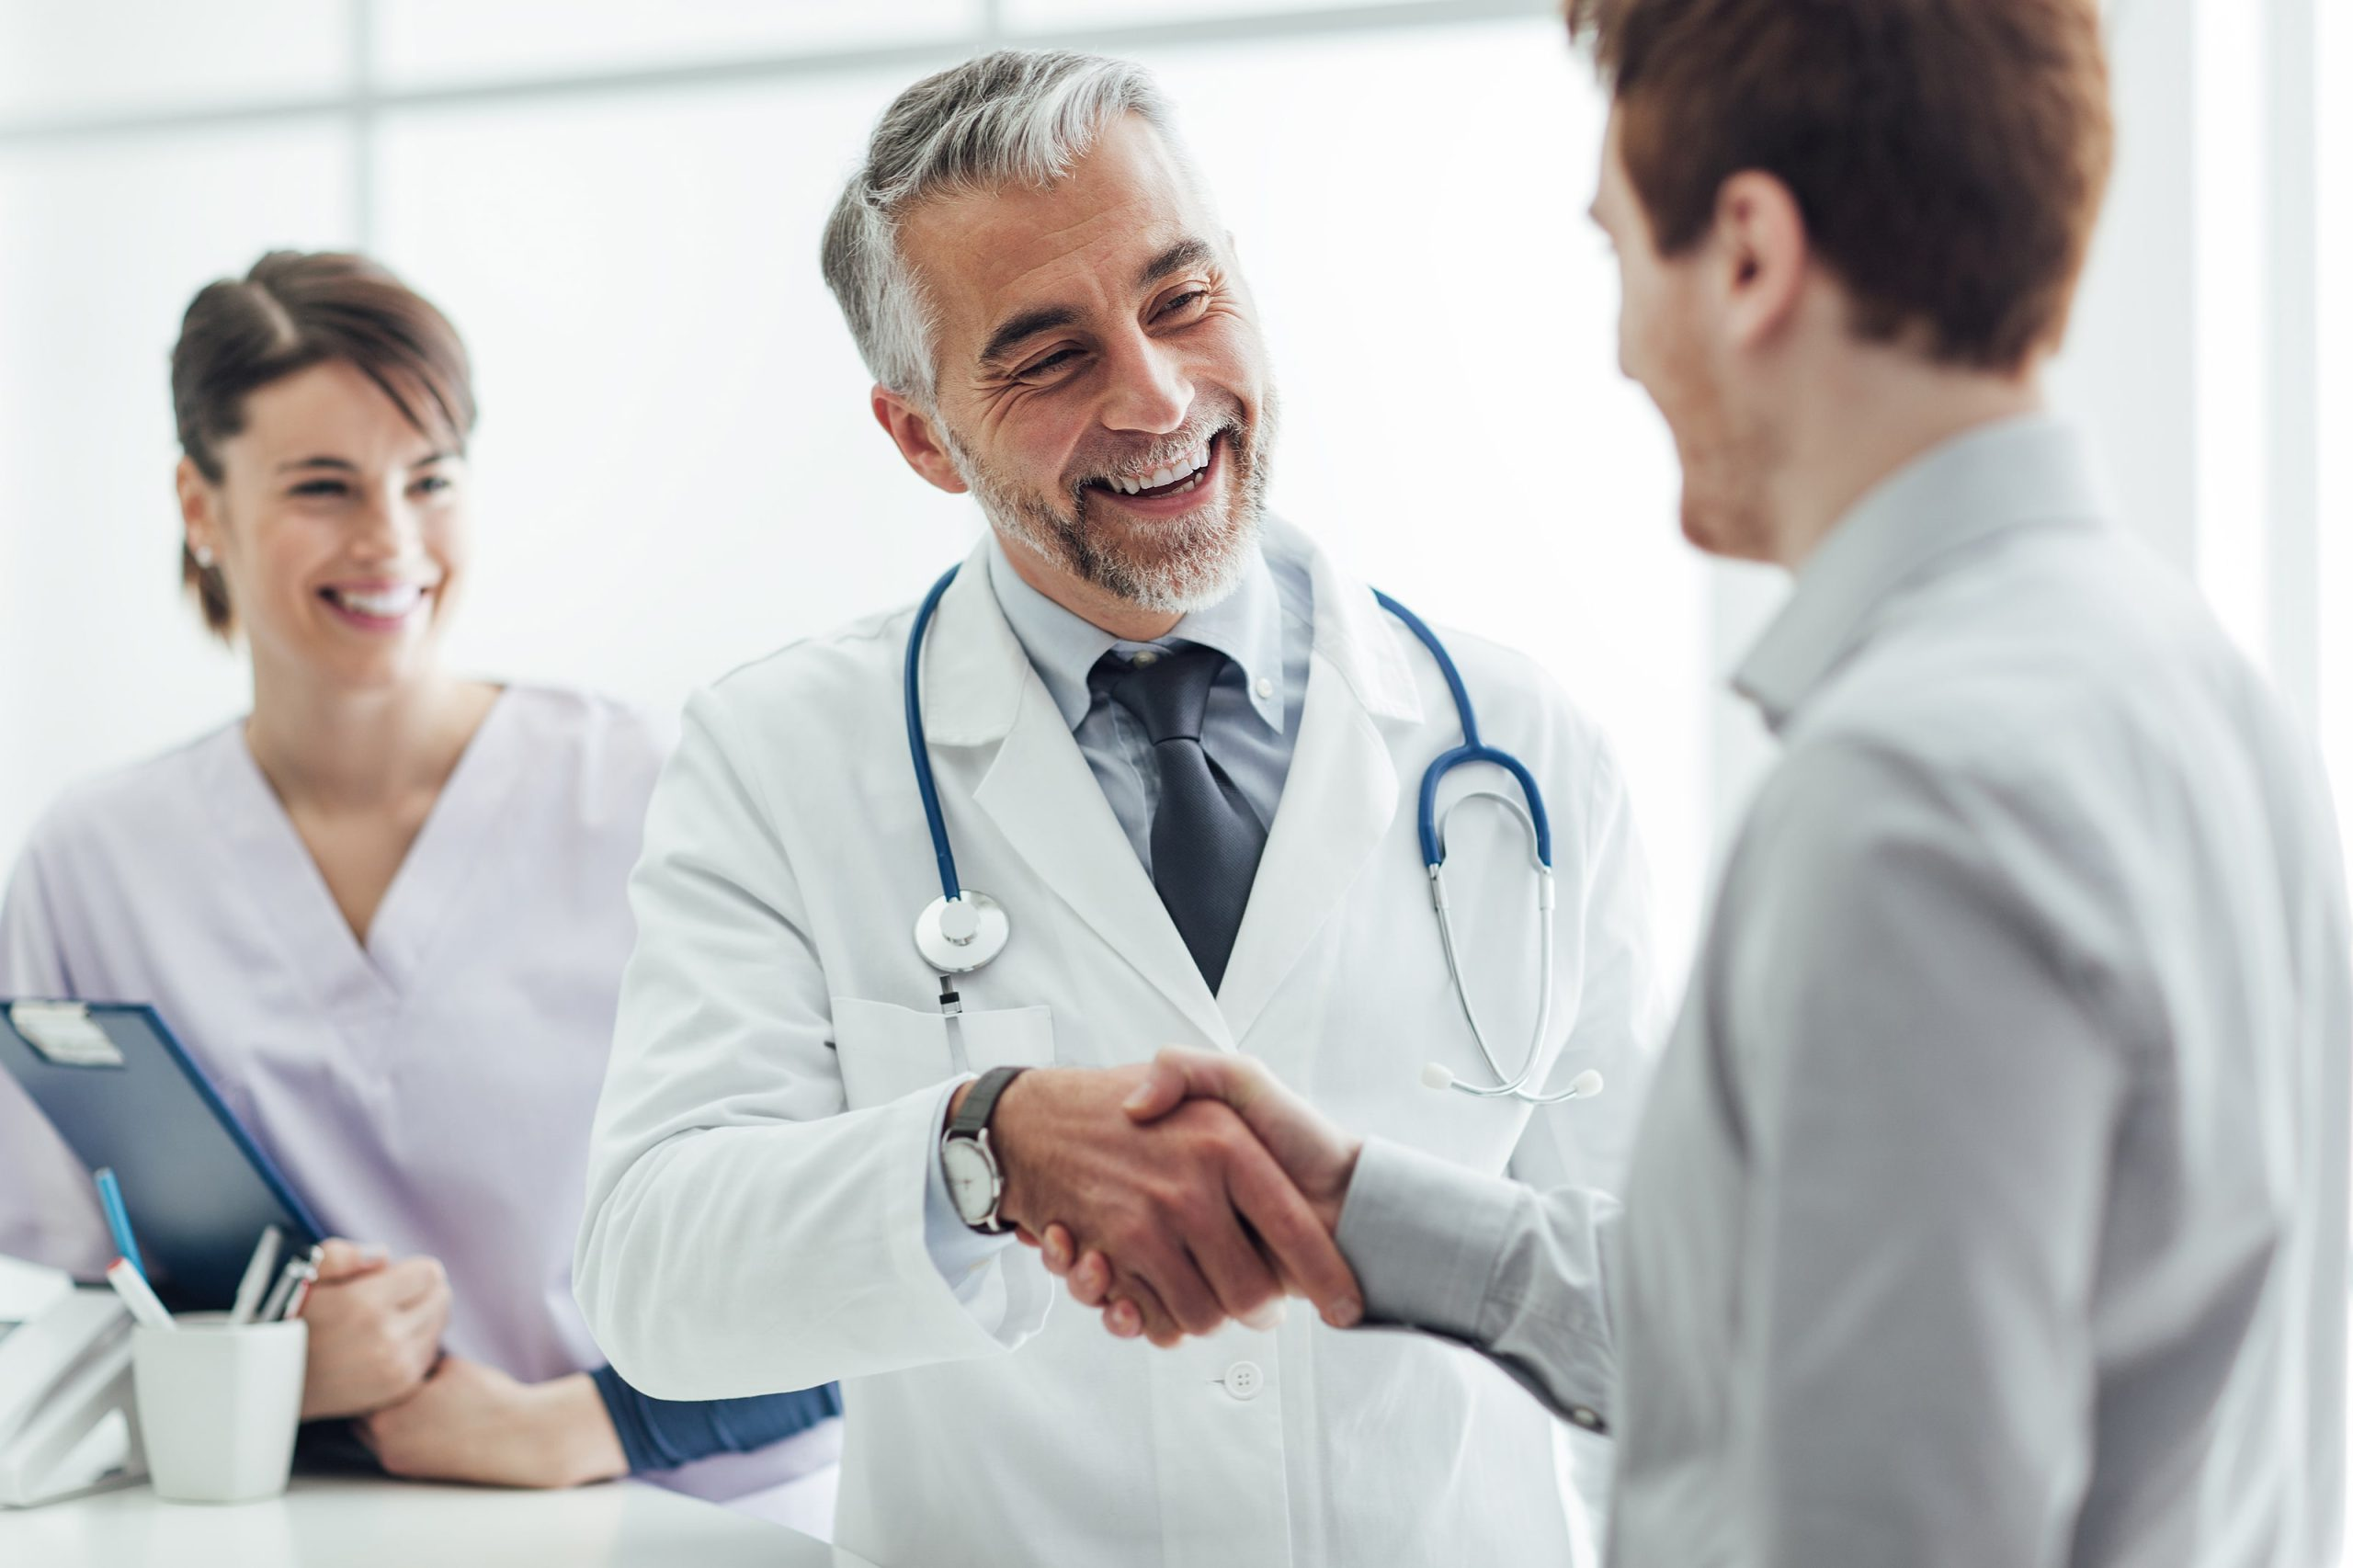 Doctor in suboxone clinic meets patient.